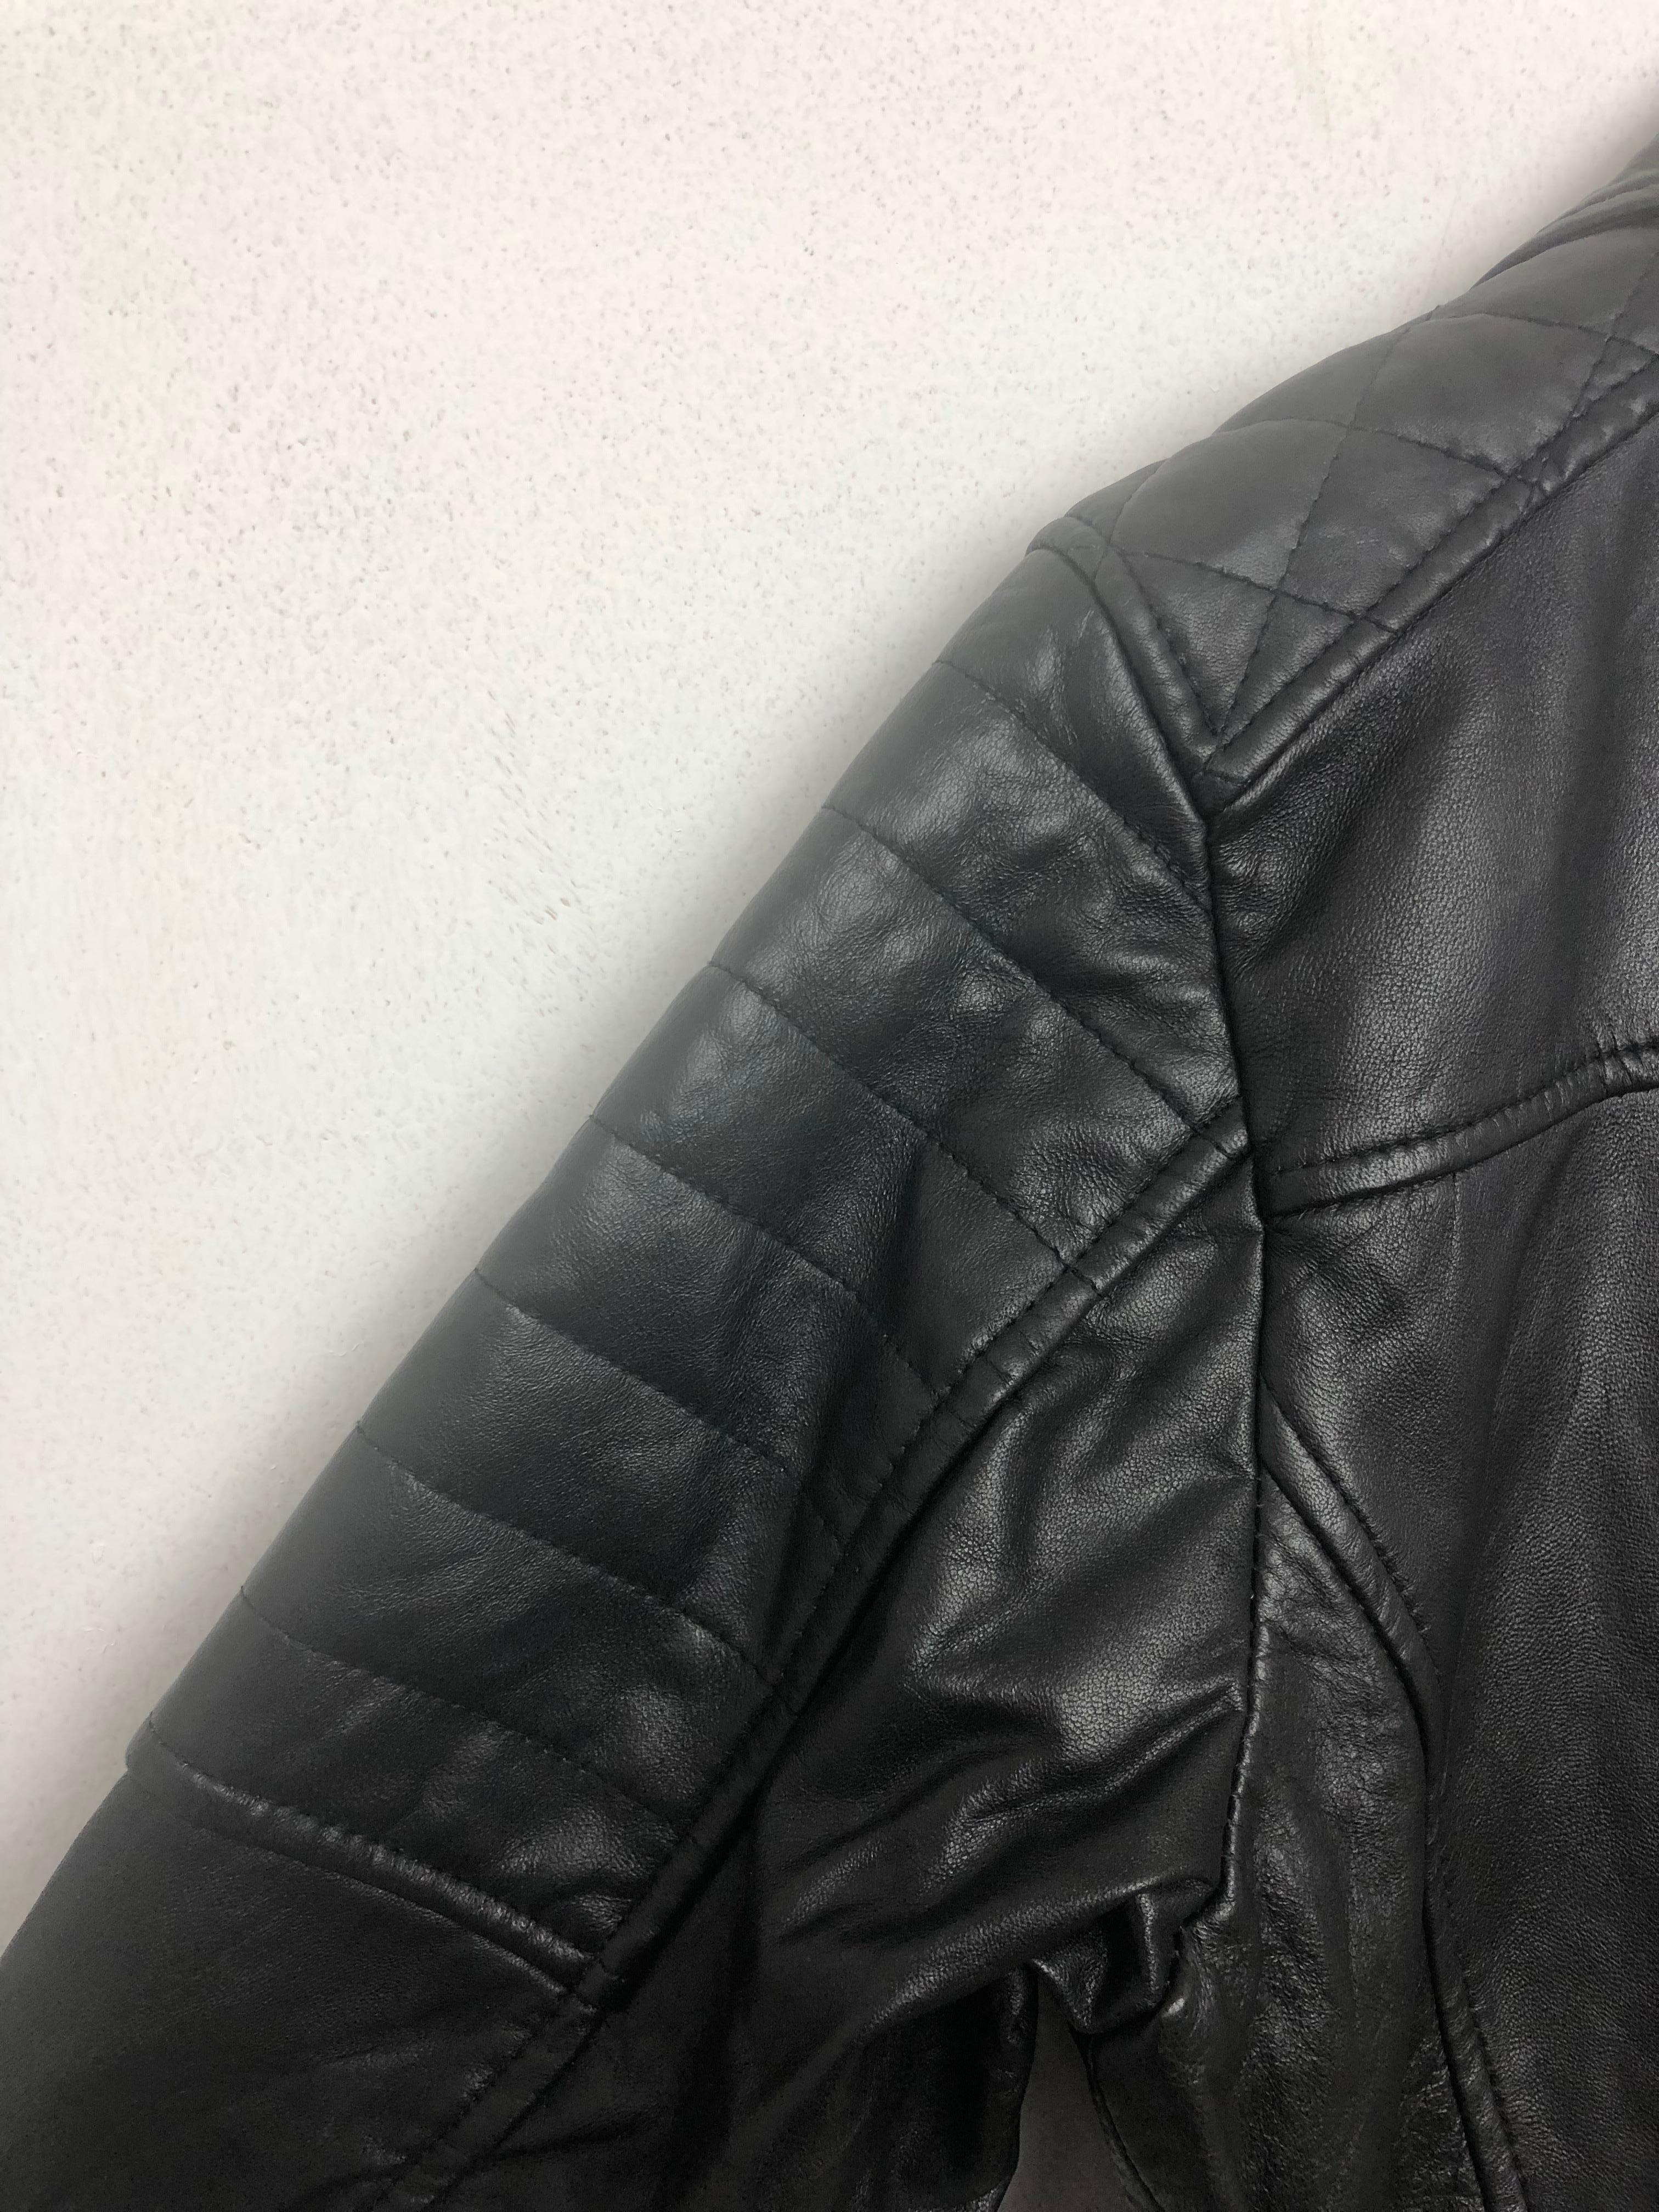 Approx. 200 x Black Leather Jacket - Image 3 of 4